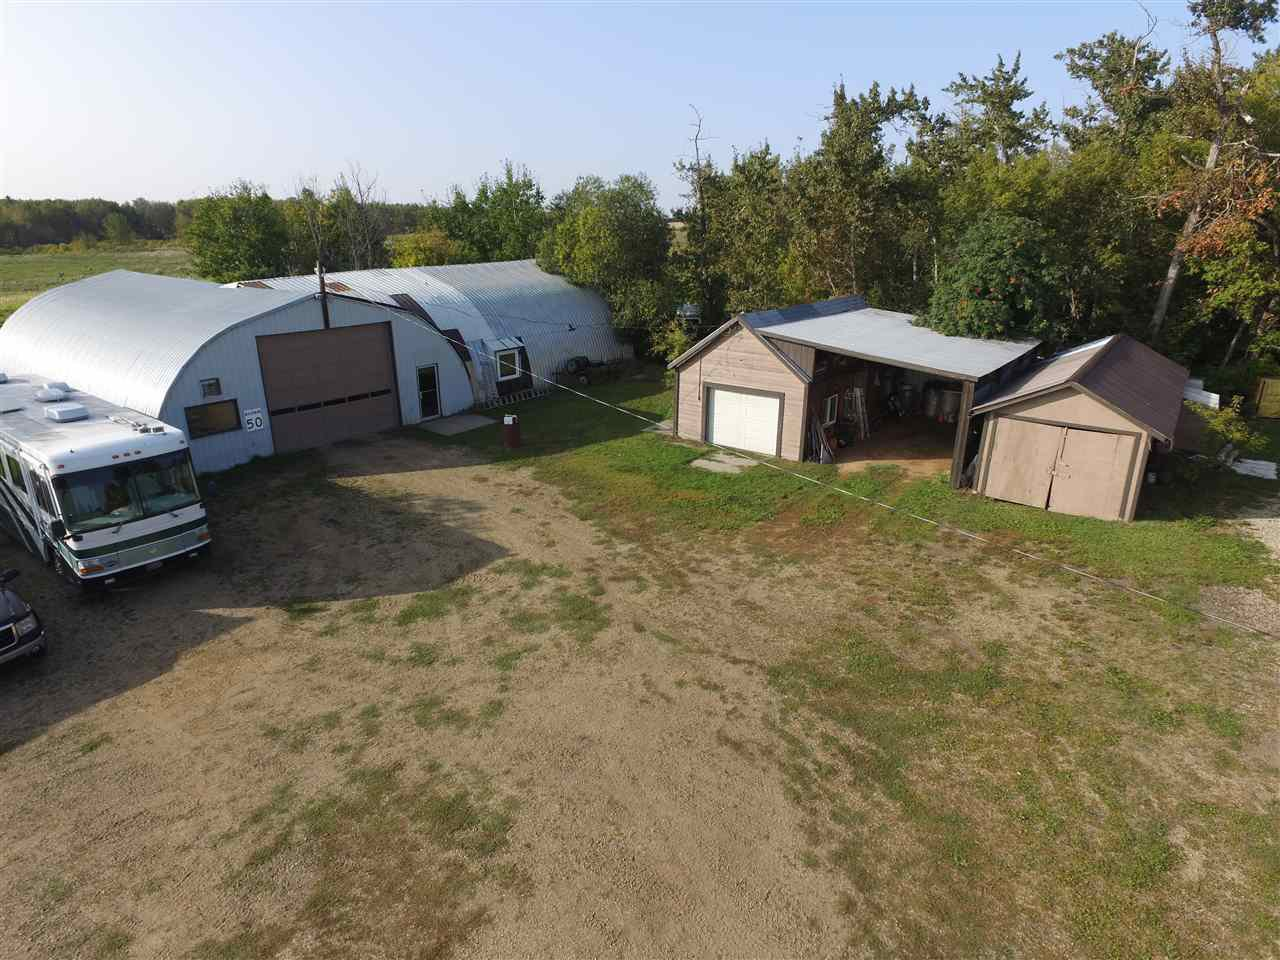 Photo 38: Photos: 472050A Hwy 814: Rural Wetaskiwin County House for sale : MLS®# E4213442